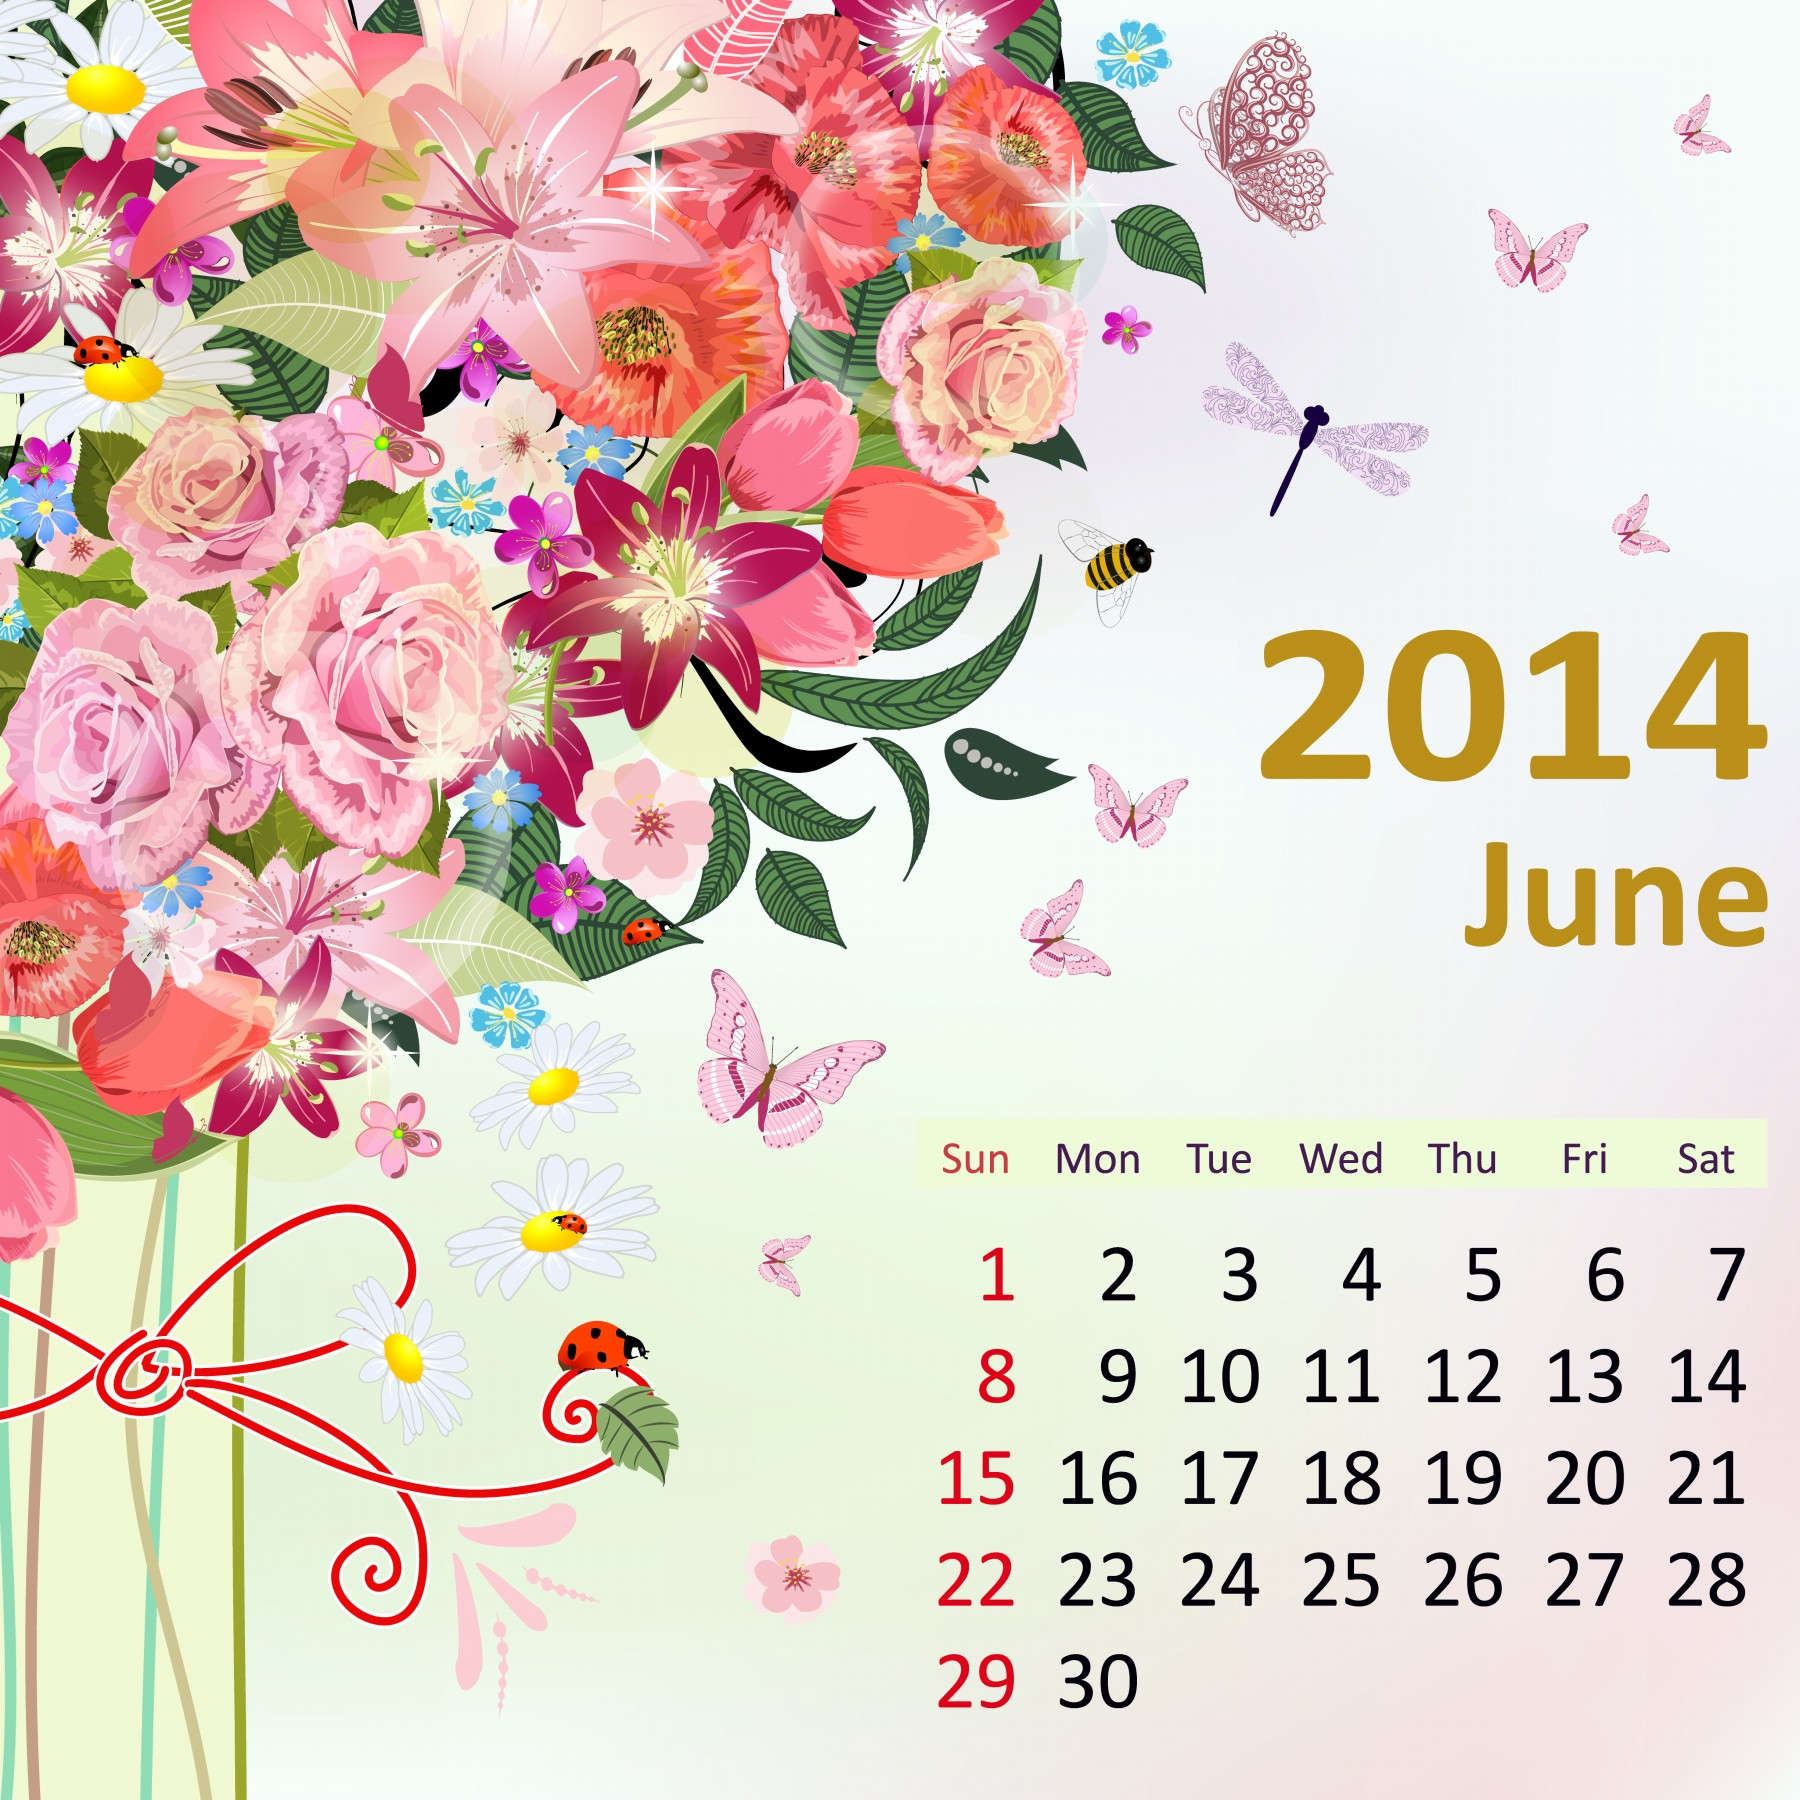 Cute 2014 Monthly Calendar Printable June 2014 calendar.